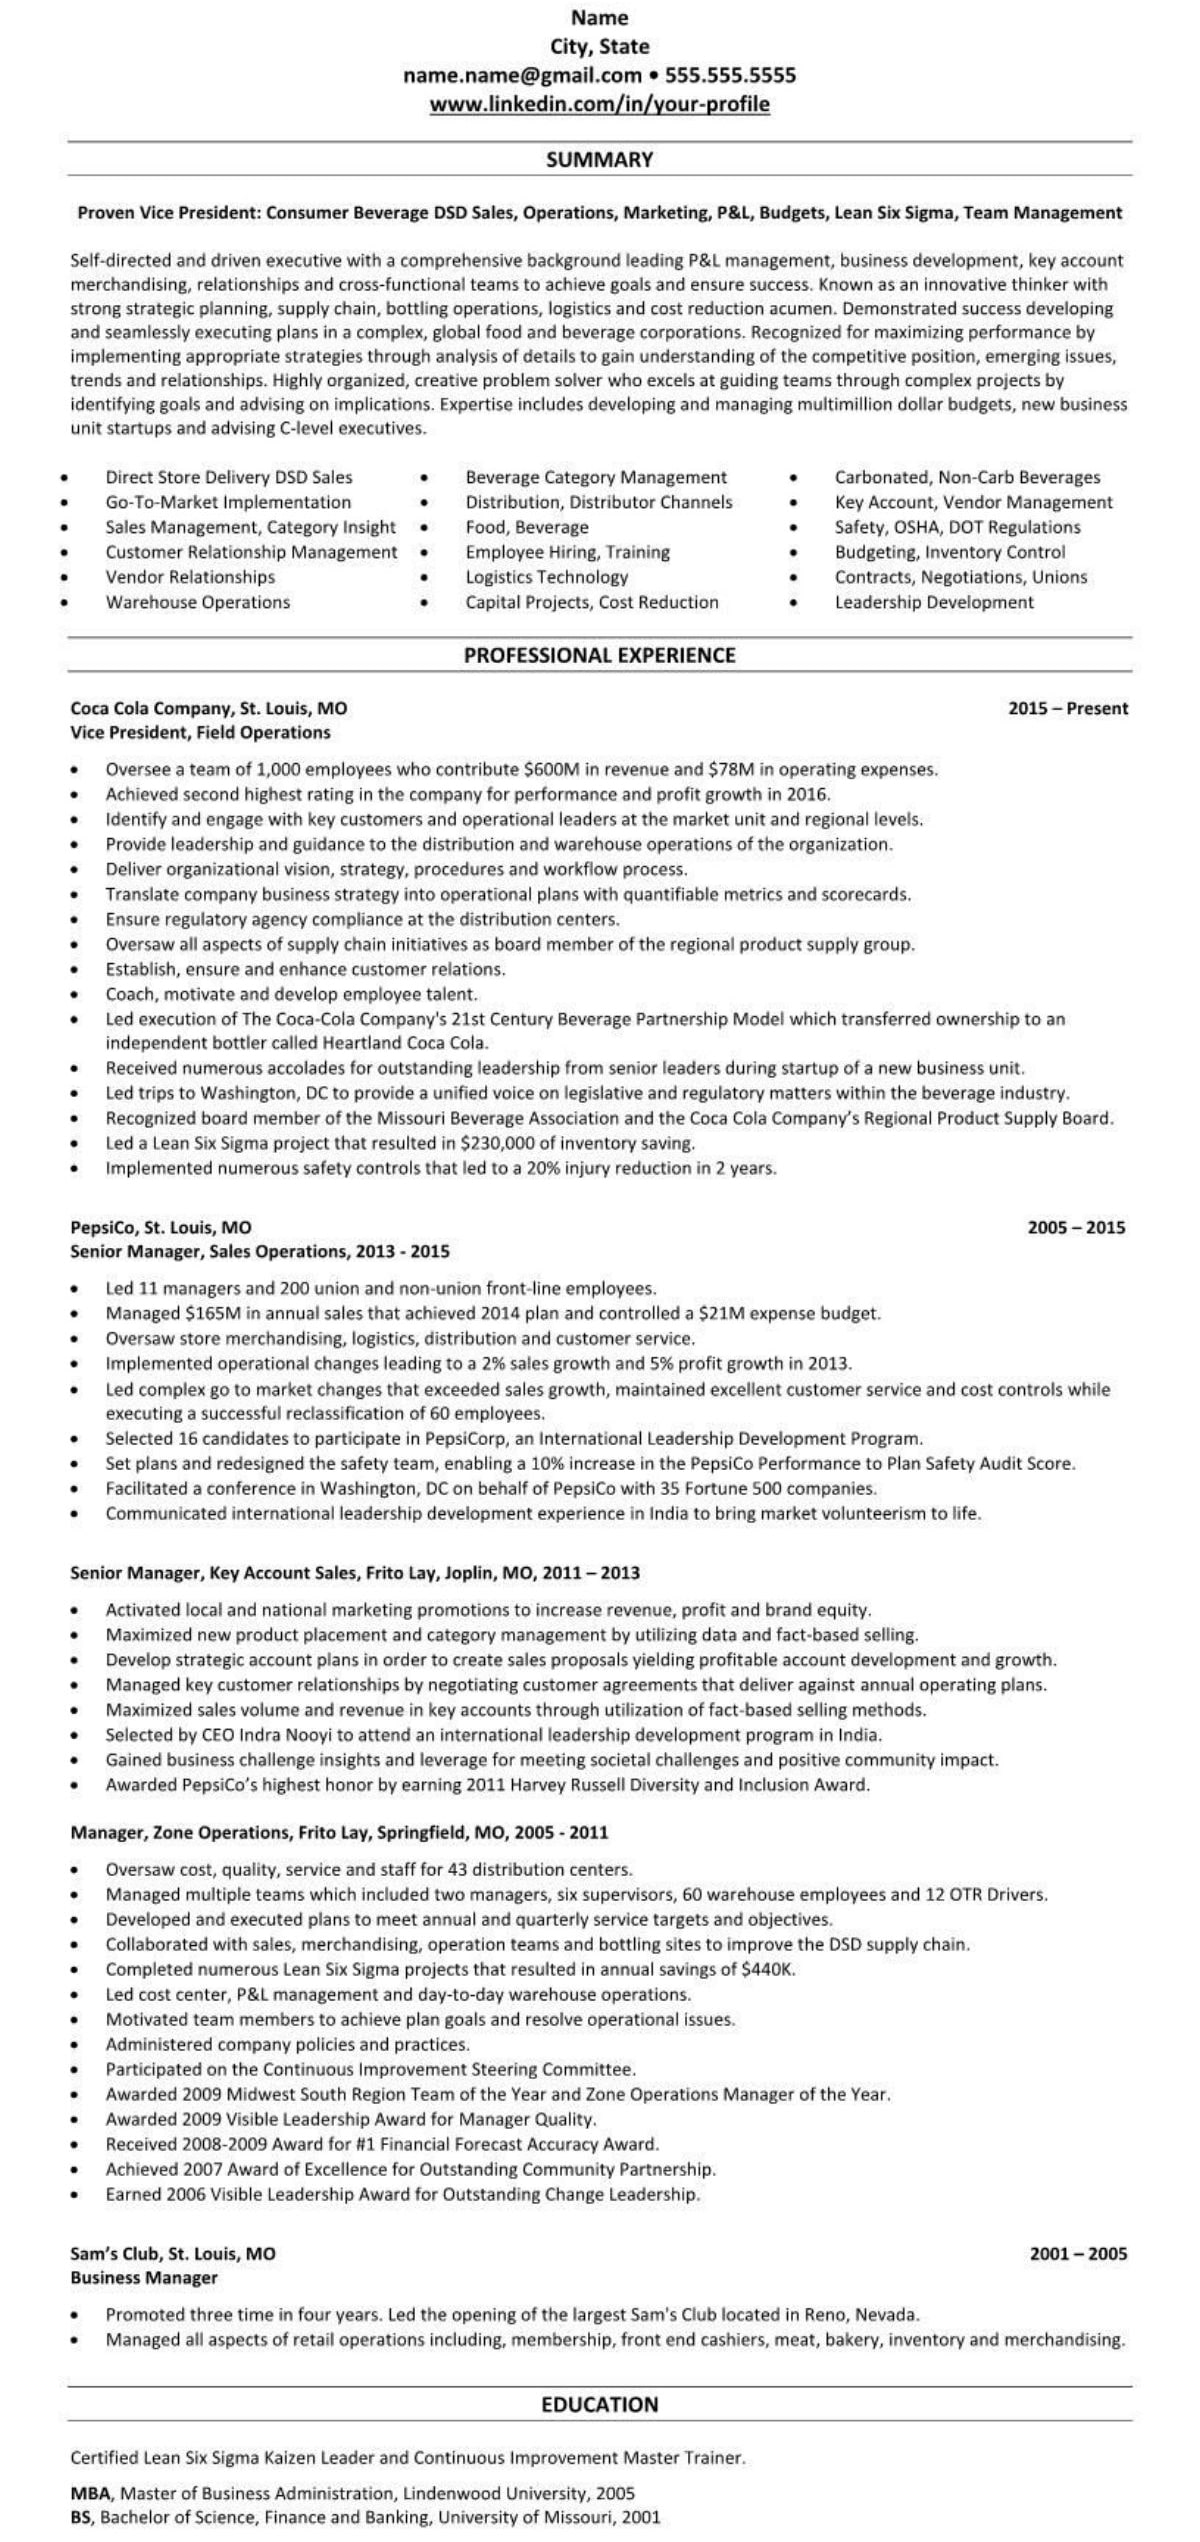 Professional executive resume example beverage sales 1919